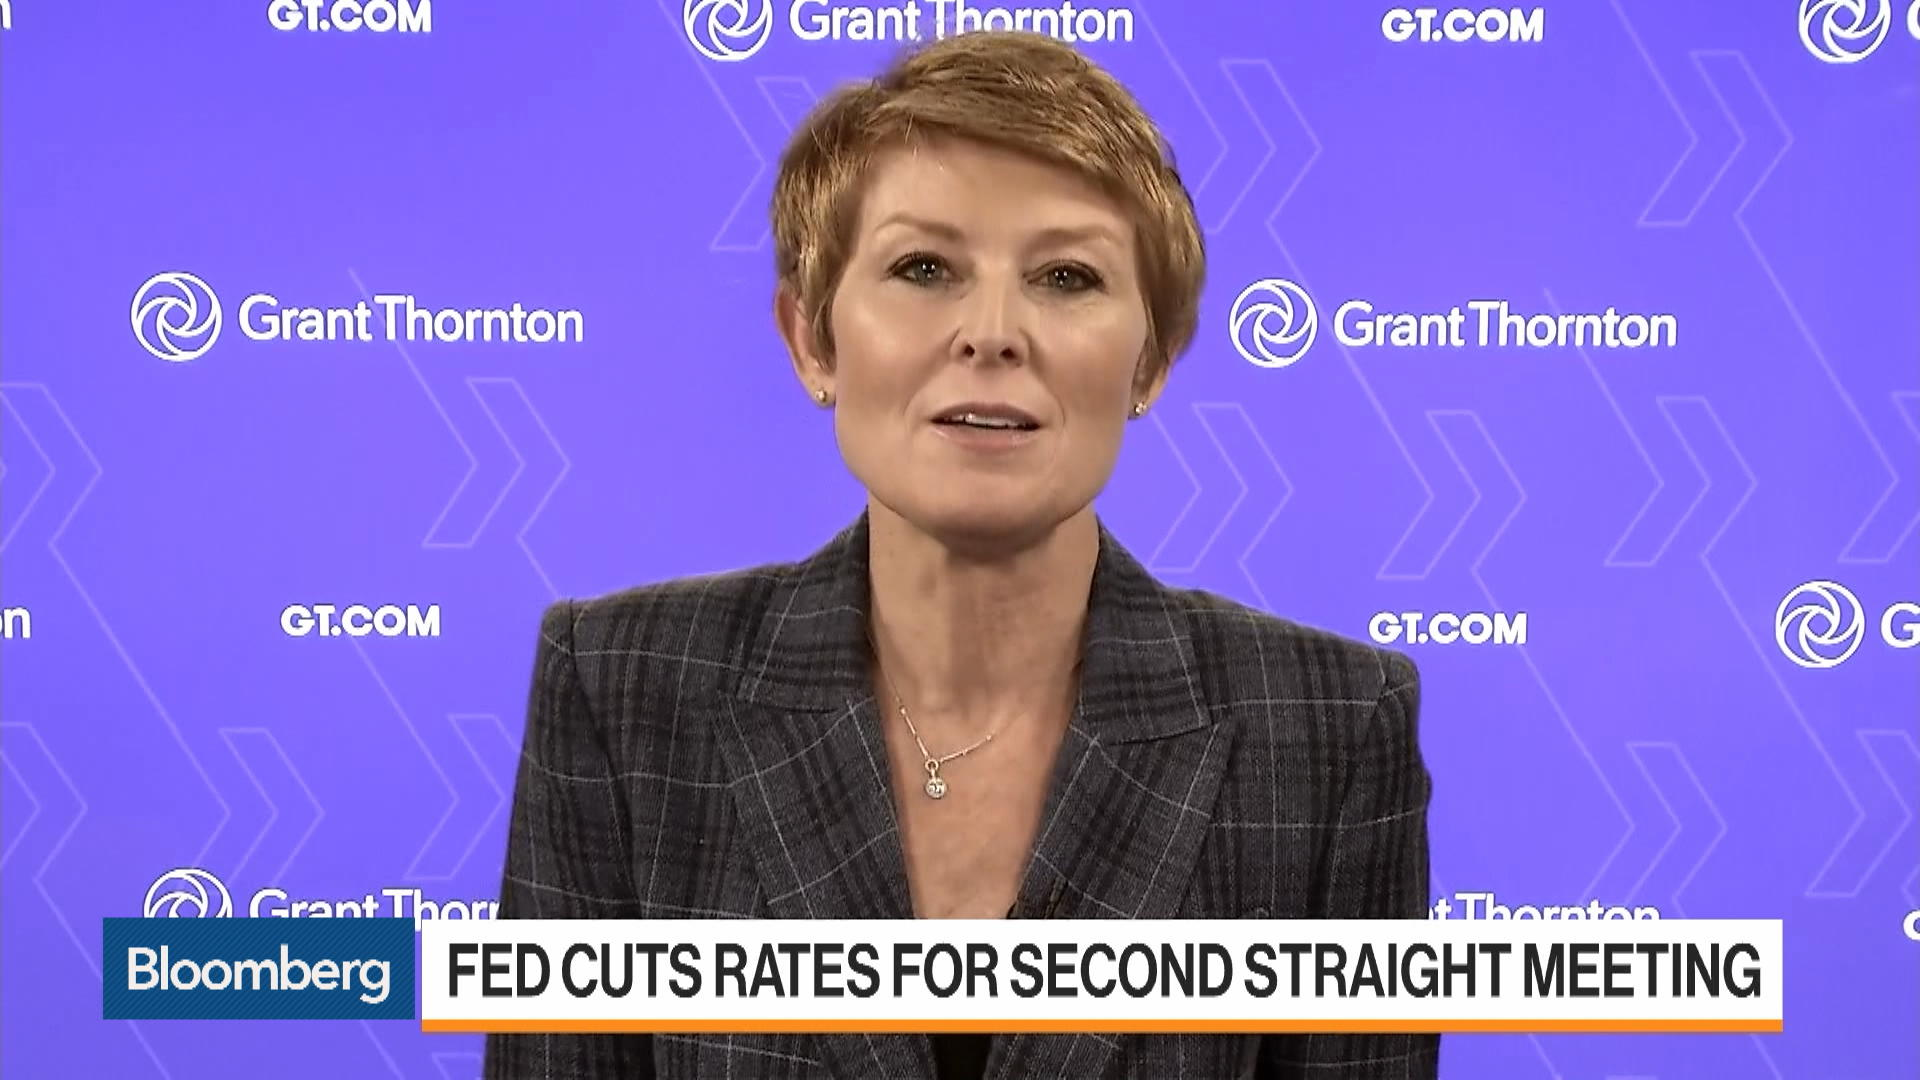 Federal Reserve 'More Fragmented Than Divided' on Rates, Economist Diane Swonk Says